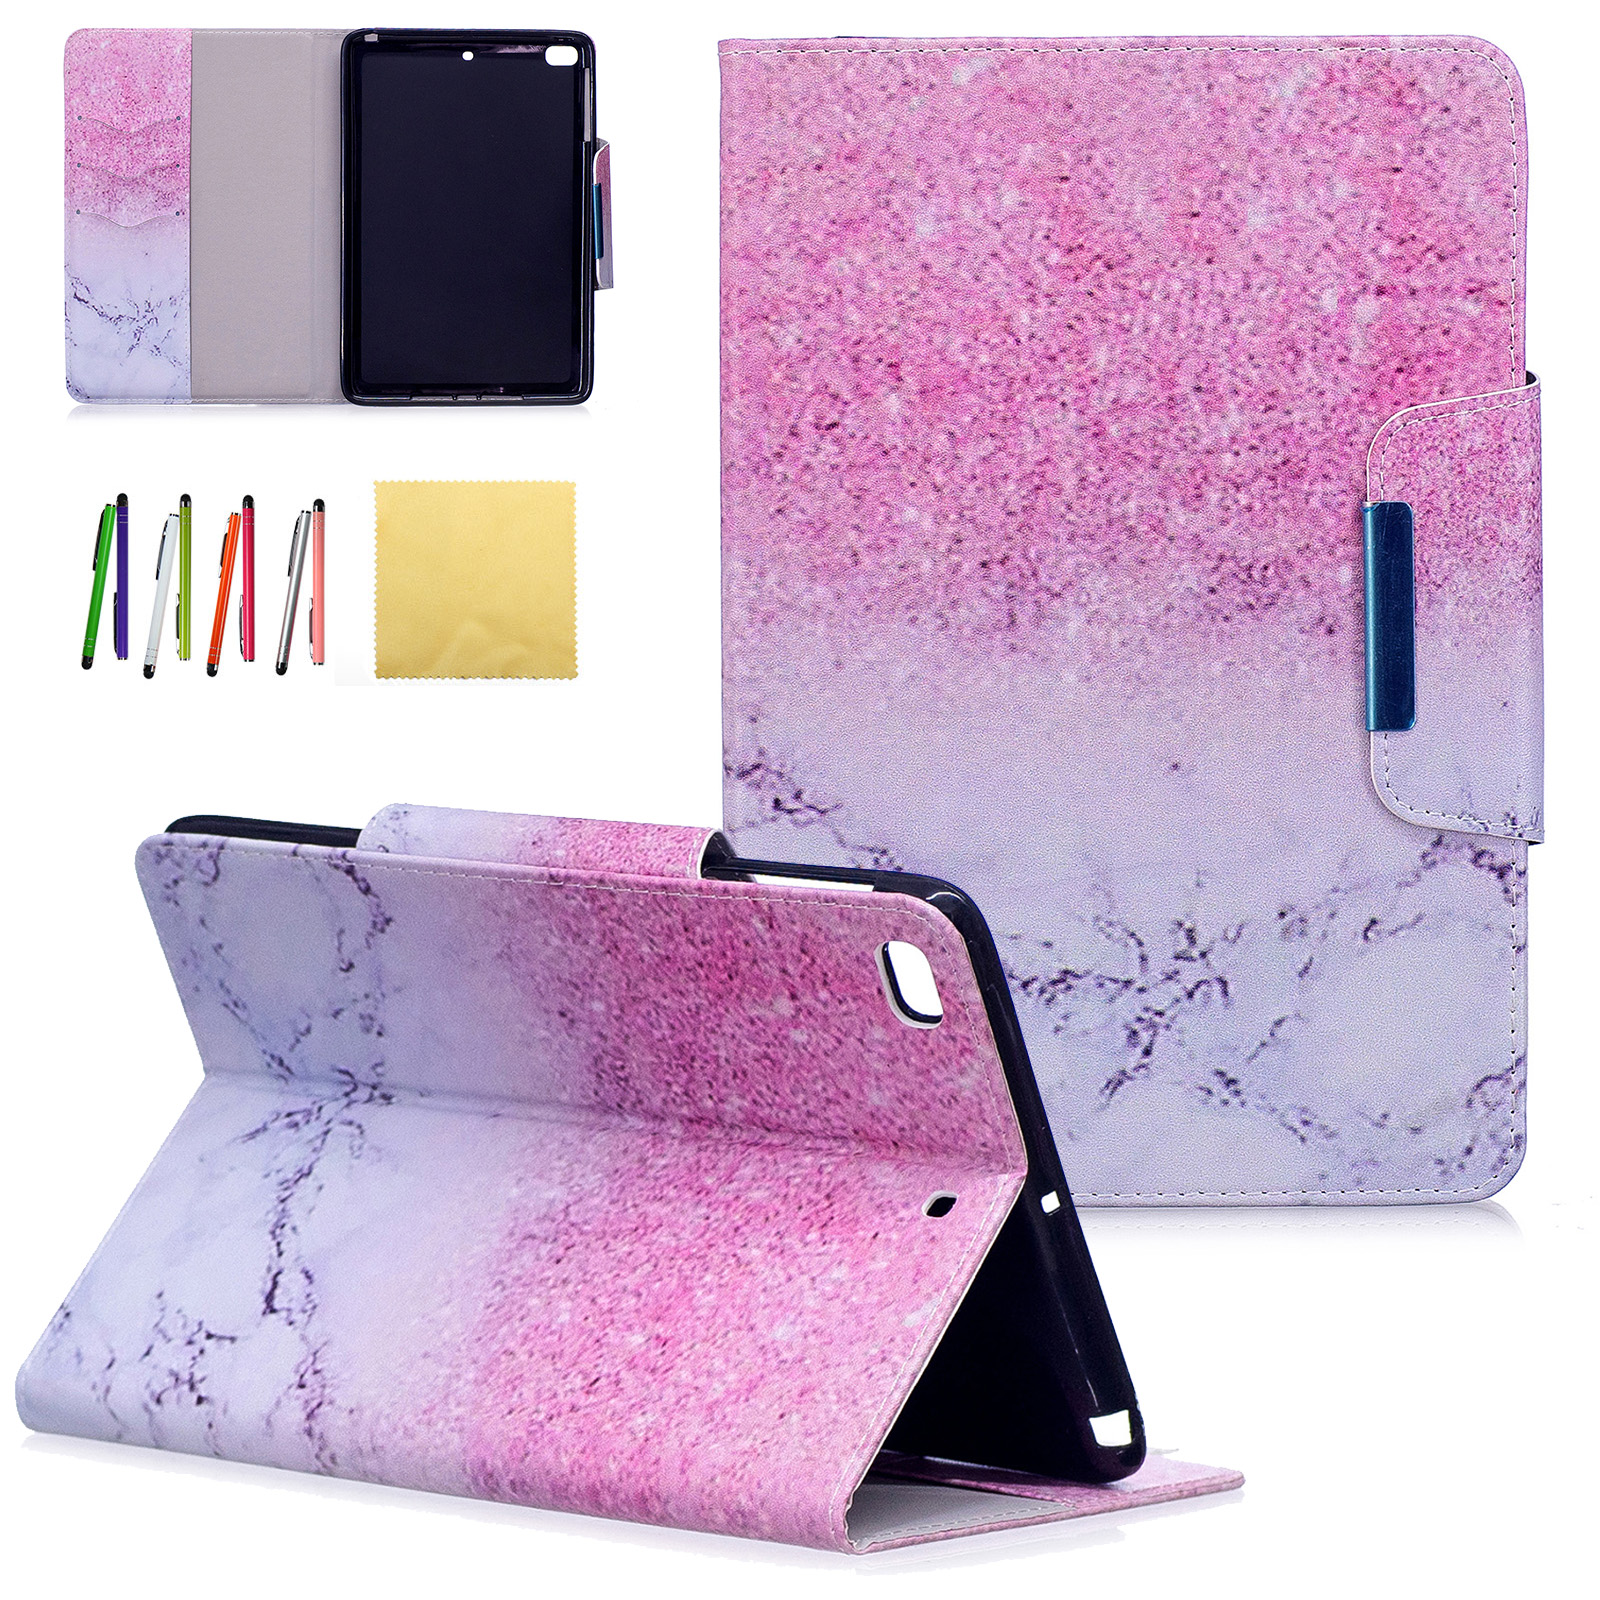 iPad Mini 4 Kids Case, Goodest Colorful PU Leather Stand Wallet Case Covers with Auto Sleep/Wake Function & Card Slots for 7.9 inch Apple iPad Mini 4 2015 Tablet, Marble Sand